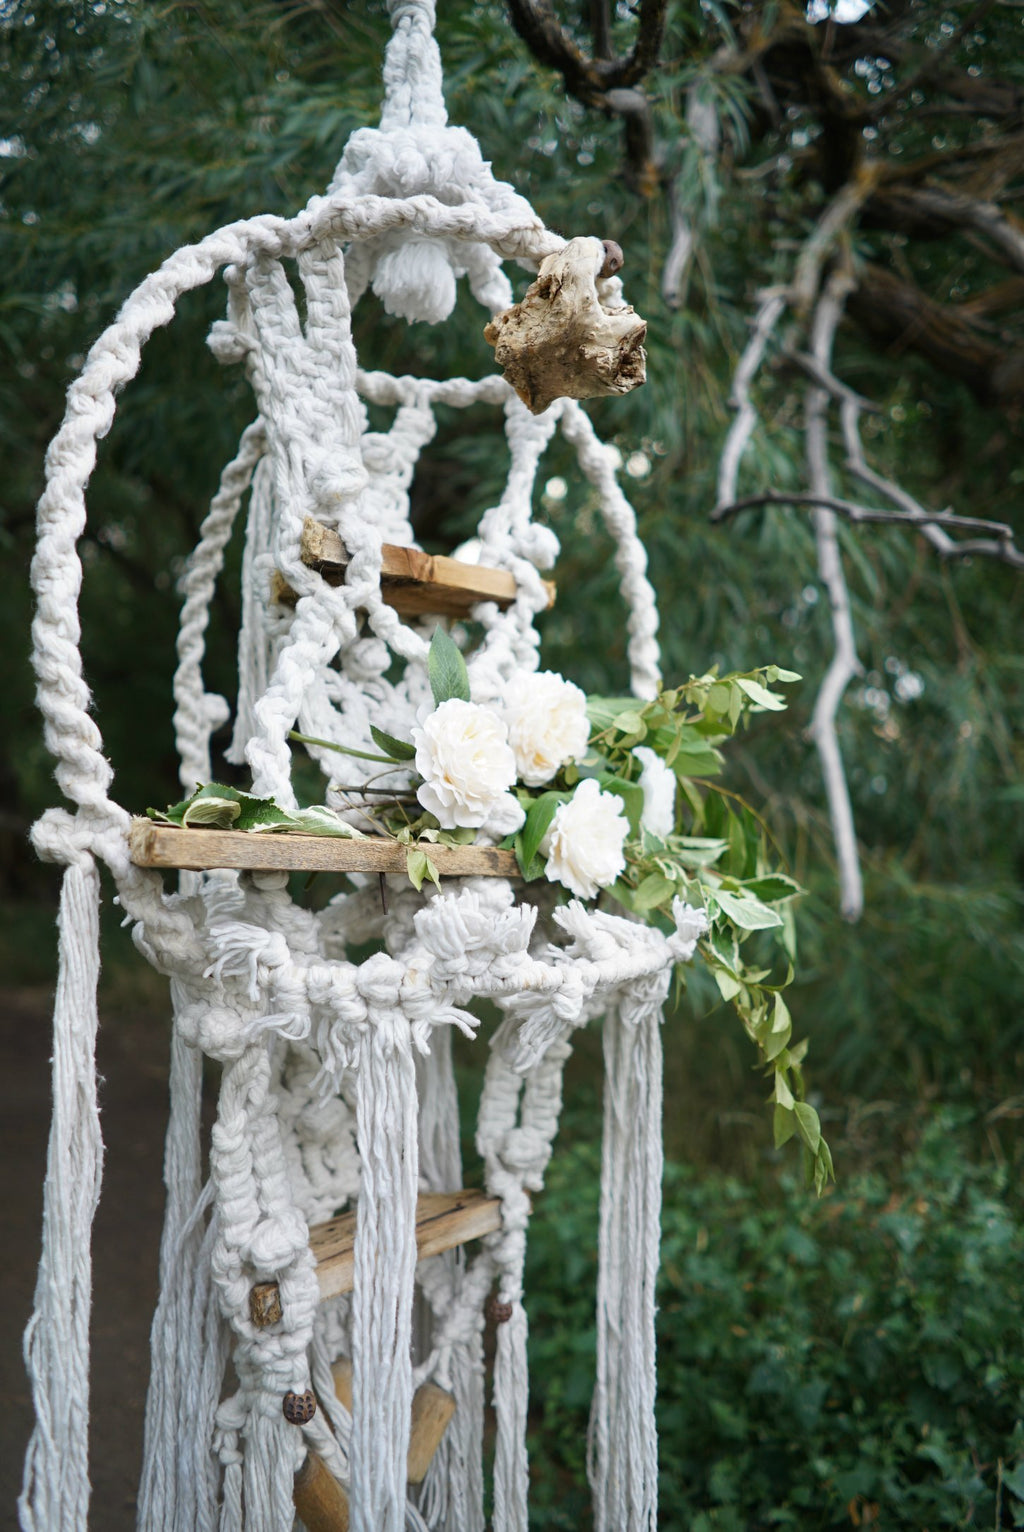 Decorative macrame hanging